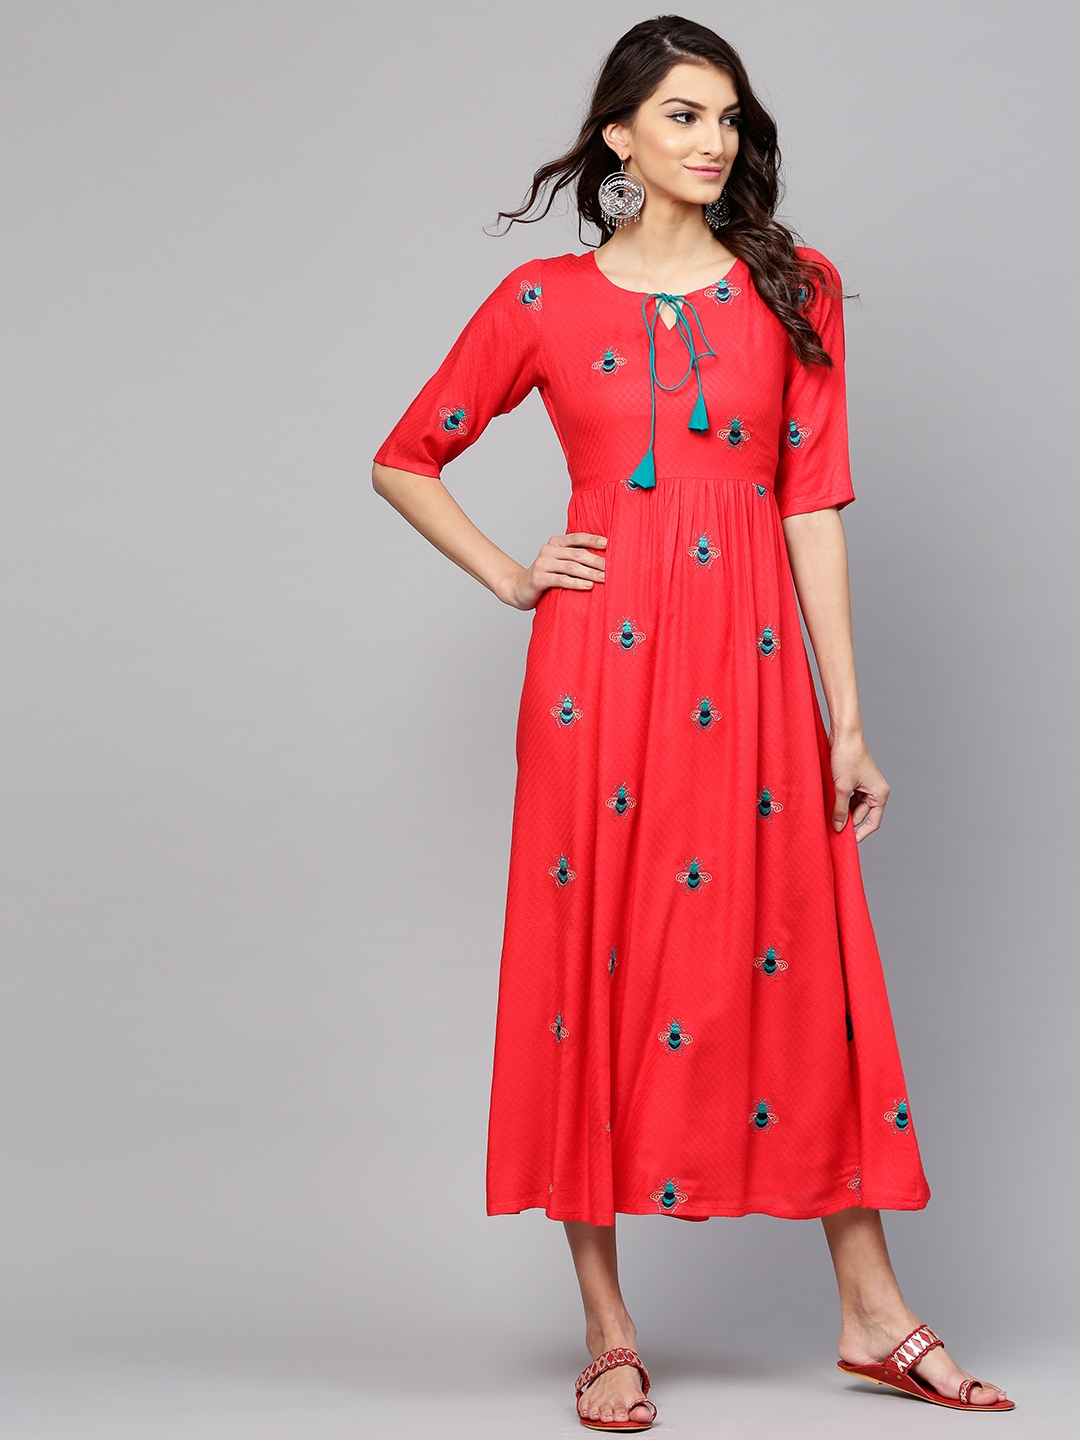 21960849e Red Dress - Buy Trendy Red Colour Dresses Online in India